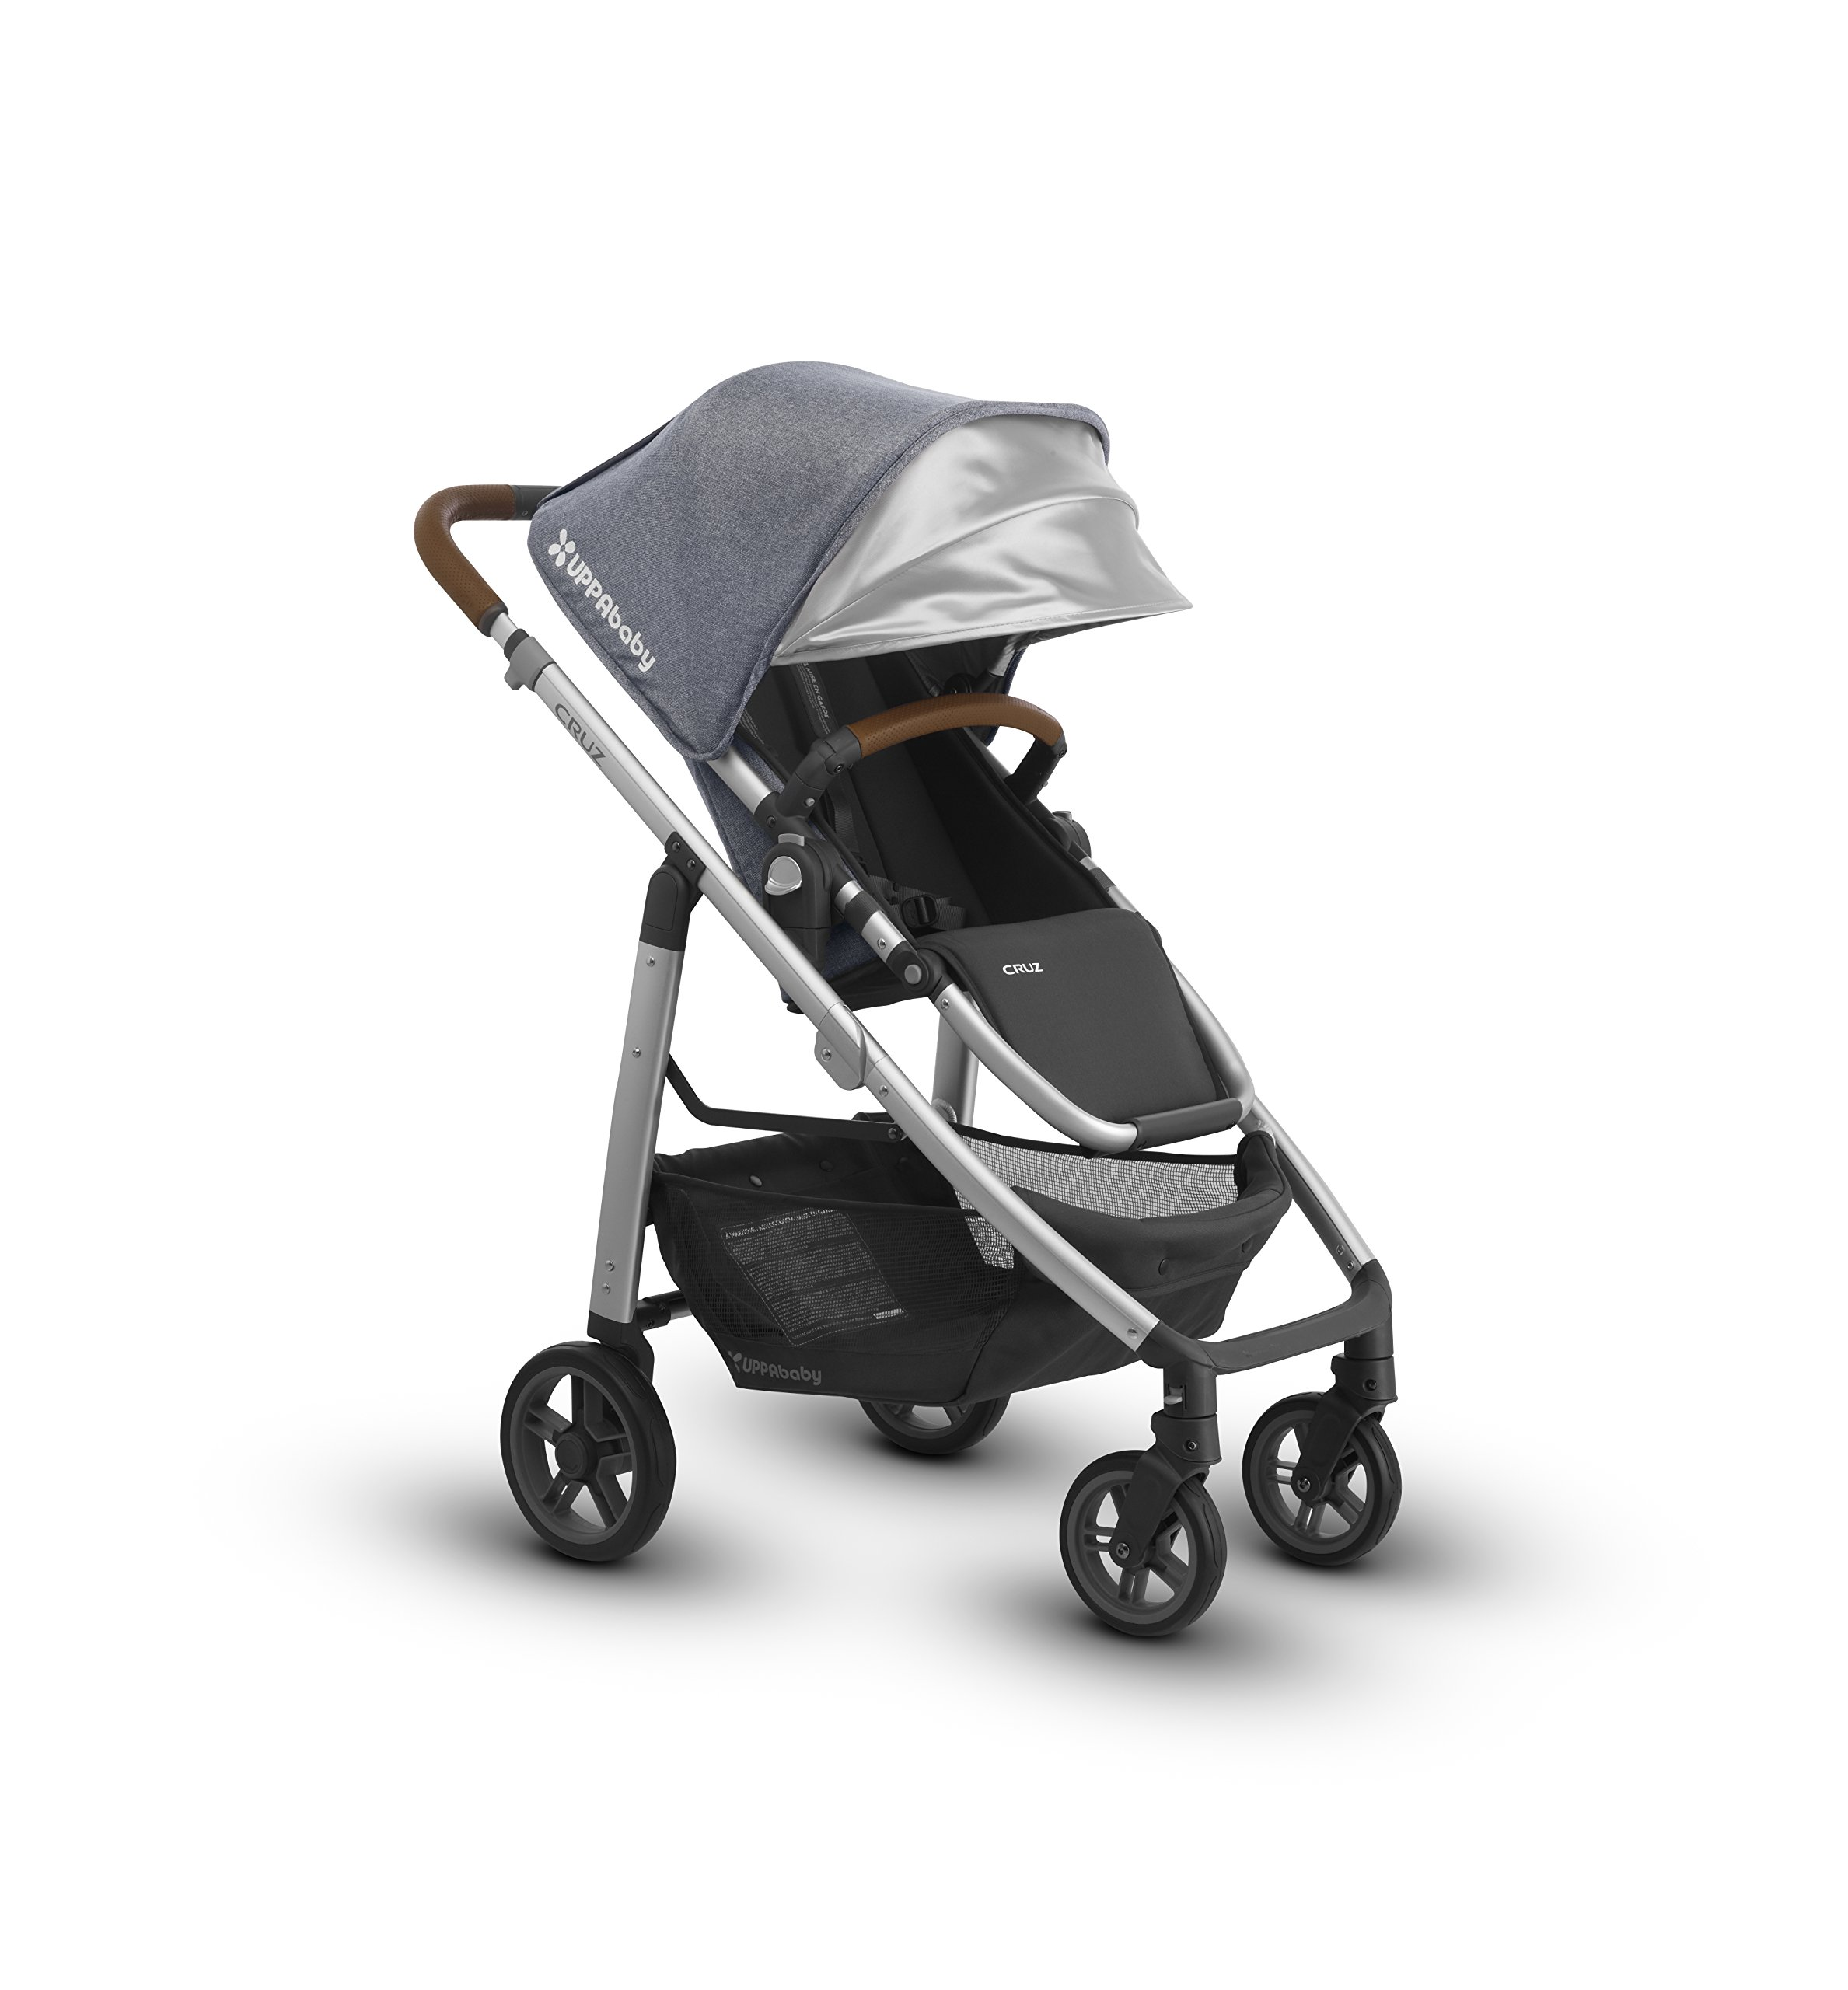 2018 UPPAbaby Cruz Stroller- Gregory (Blue Melange/Silver/Saddle Leather) by UPPAbaby